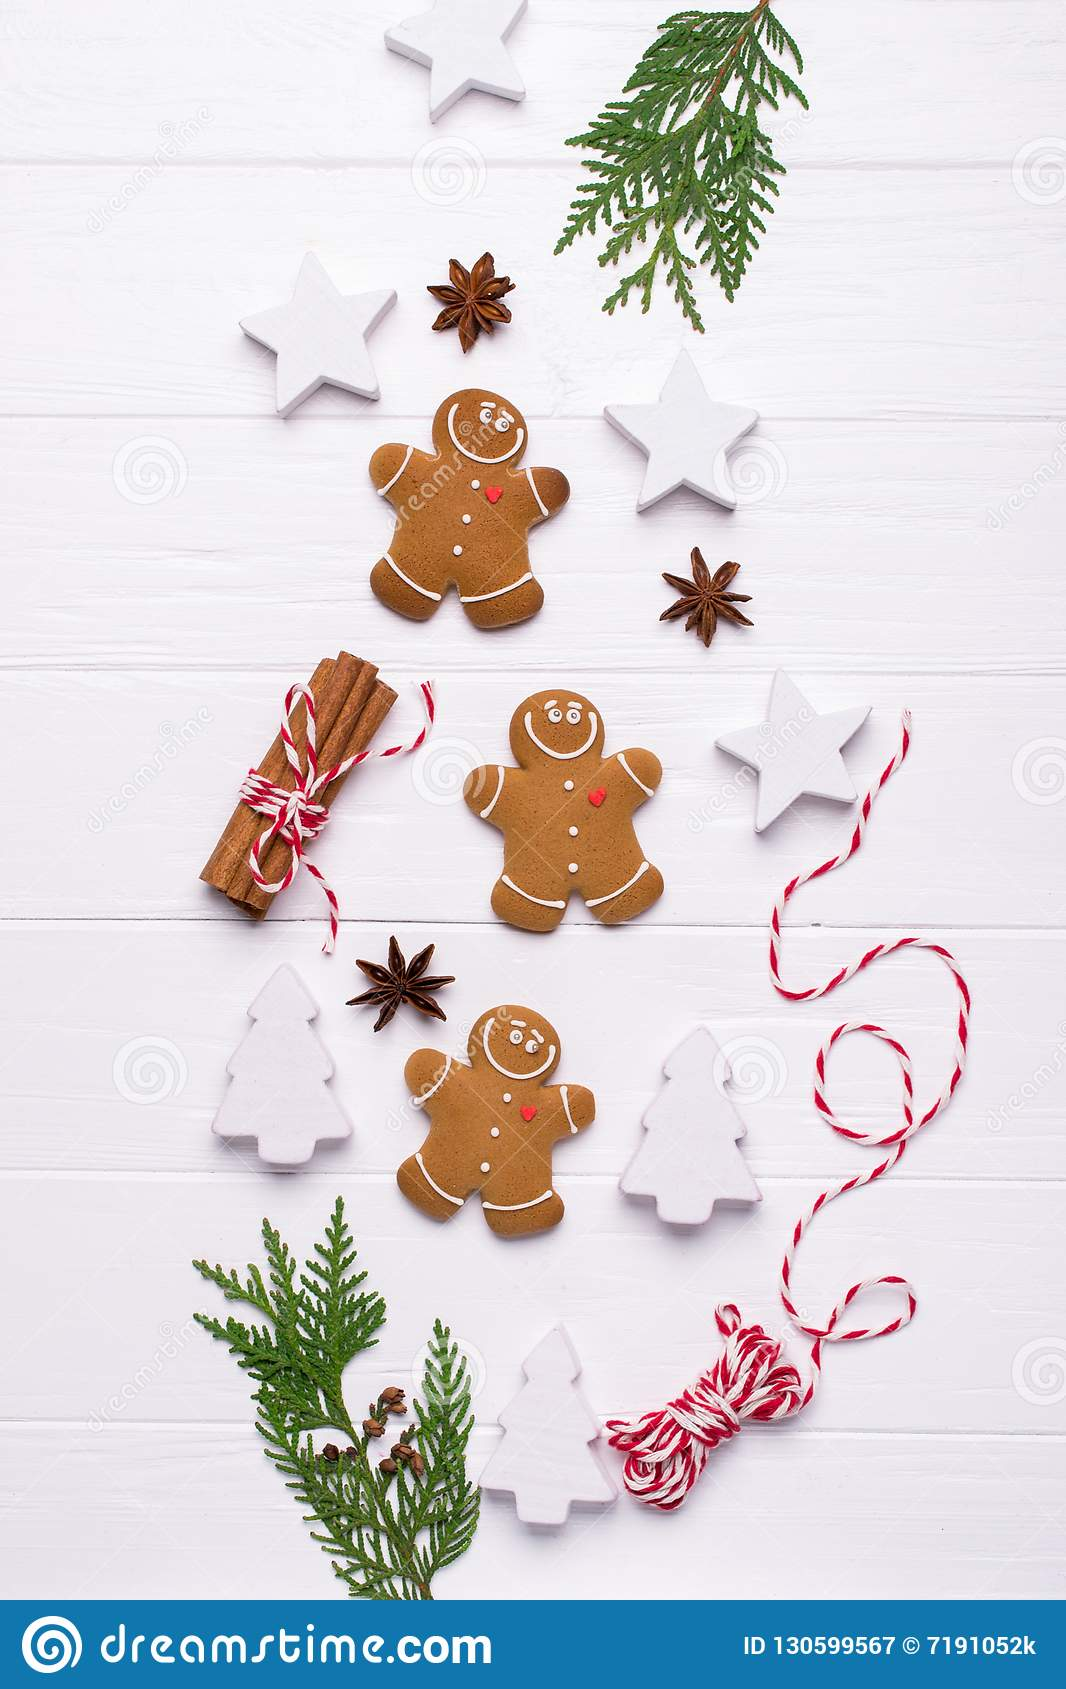 Christmas Decorative Border made of Festive Elements. Smiling gingerbread man, christmas white decorations, pine branches.